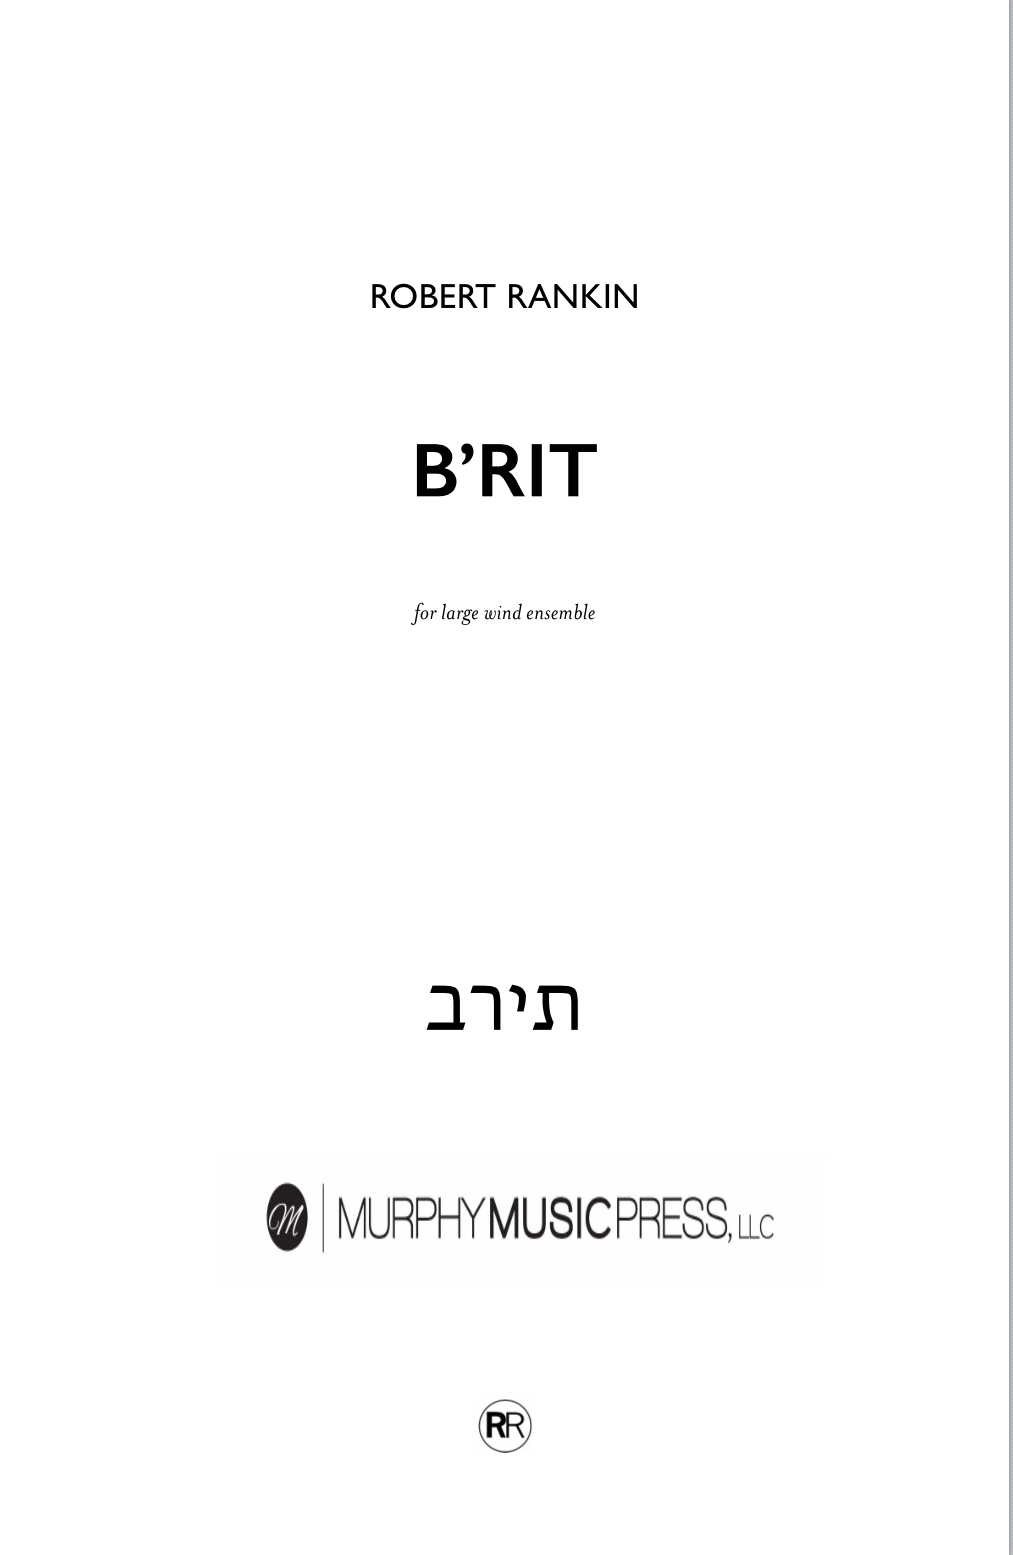 B'rit by Robert Rankin